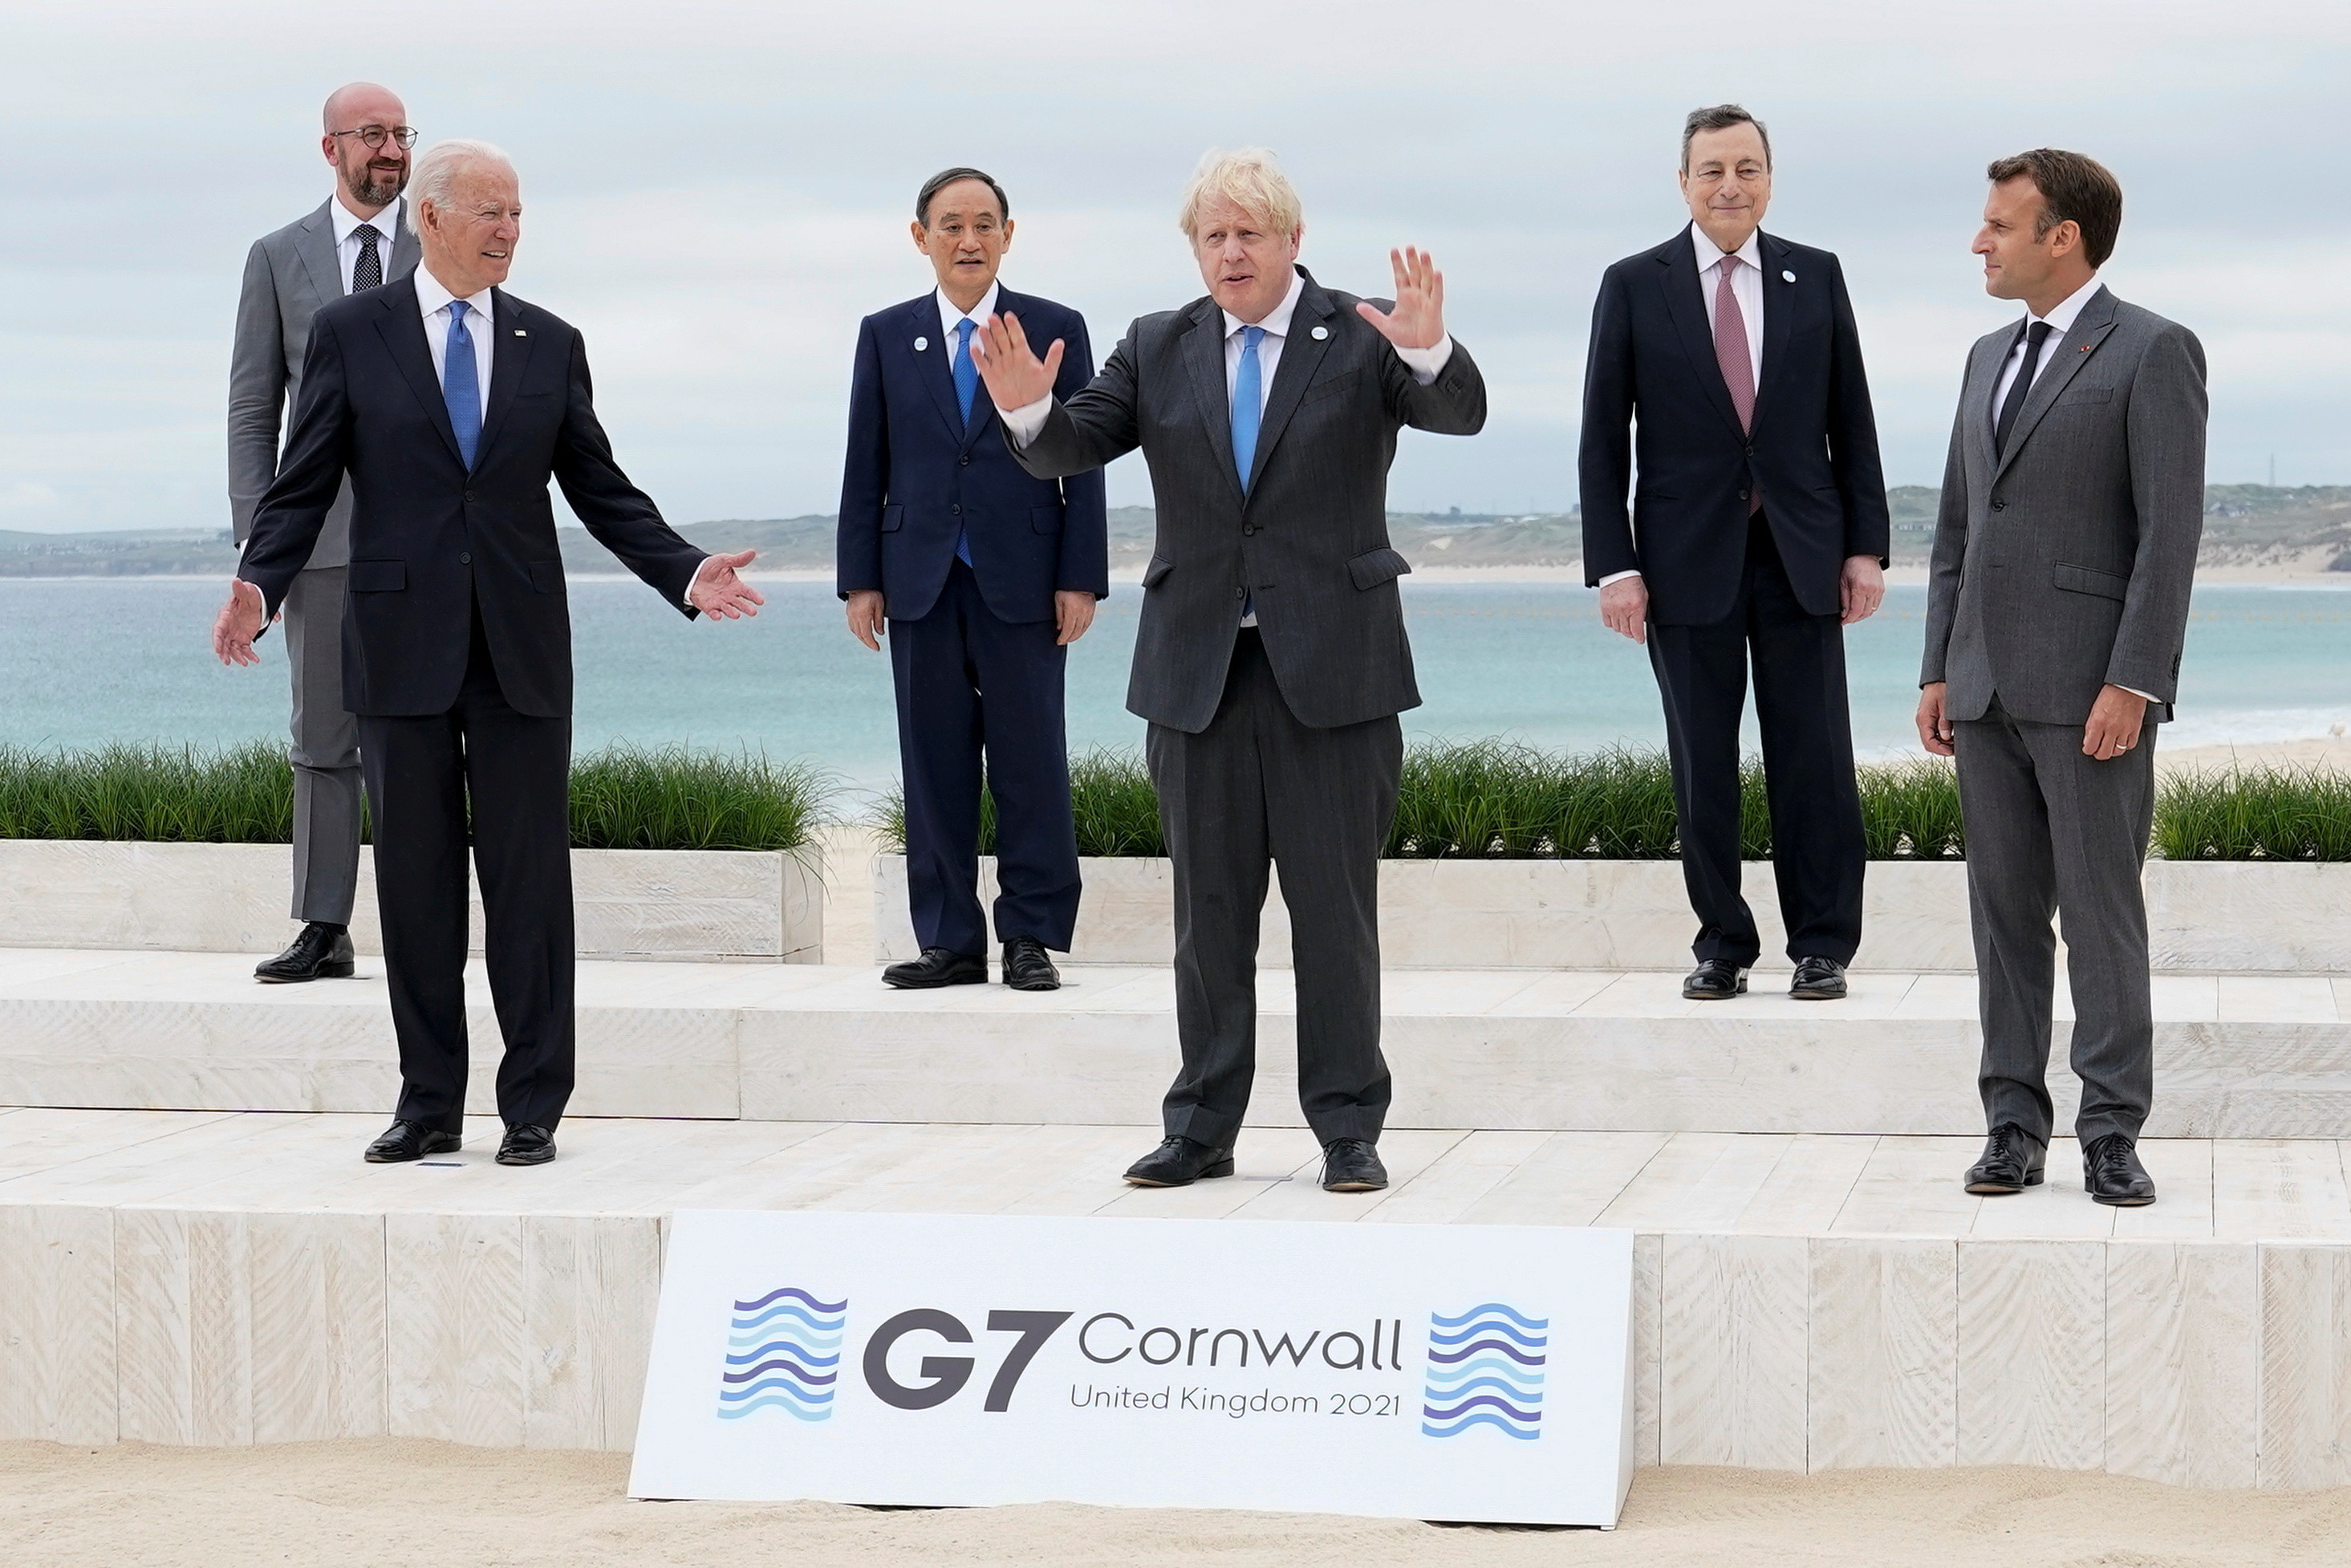 U.S. President Joe Biden and British Prime Minister Boris Johnson gesture as they pose for a family photo with G-7 leaders; European Council President Charles Michel, Japan's Prime Minister Yoshihide Suga, Italy's Prime Minister Mario Draghi and French President Emmanuel Macron at the G-7 summit, in Carbis Bay, Cornwall, Britain June 11, 2021. Patrick Semansky/Pool via REUTERS     TPX IMAGES OF THE DAY - RC2DYN9SX06W